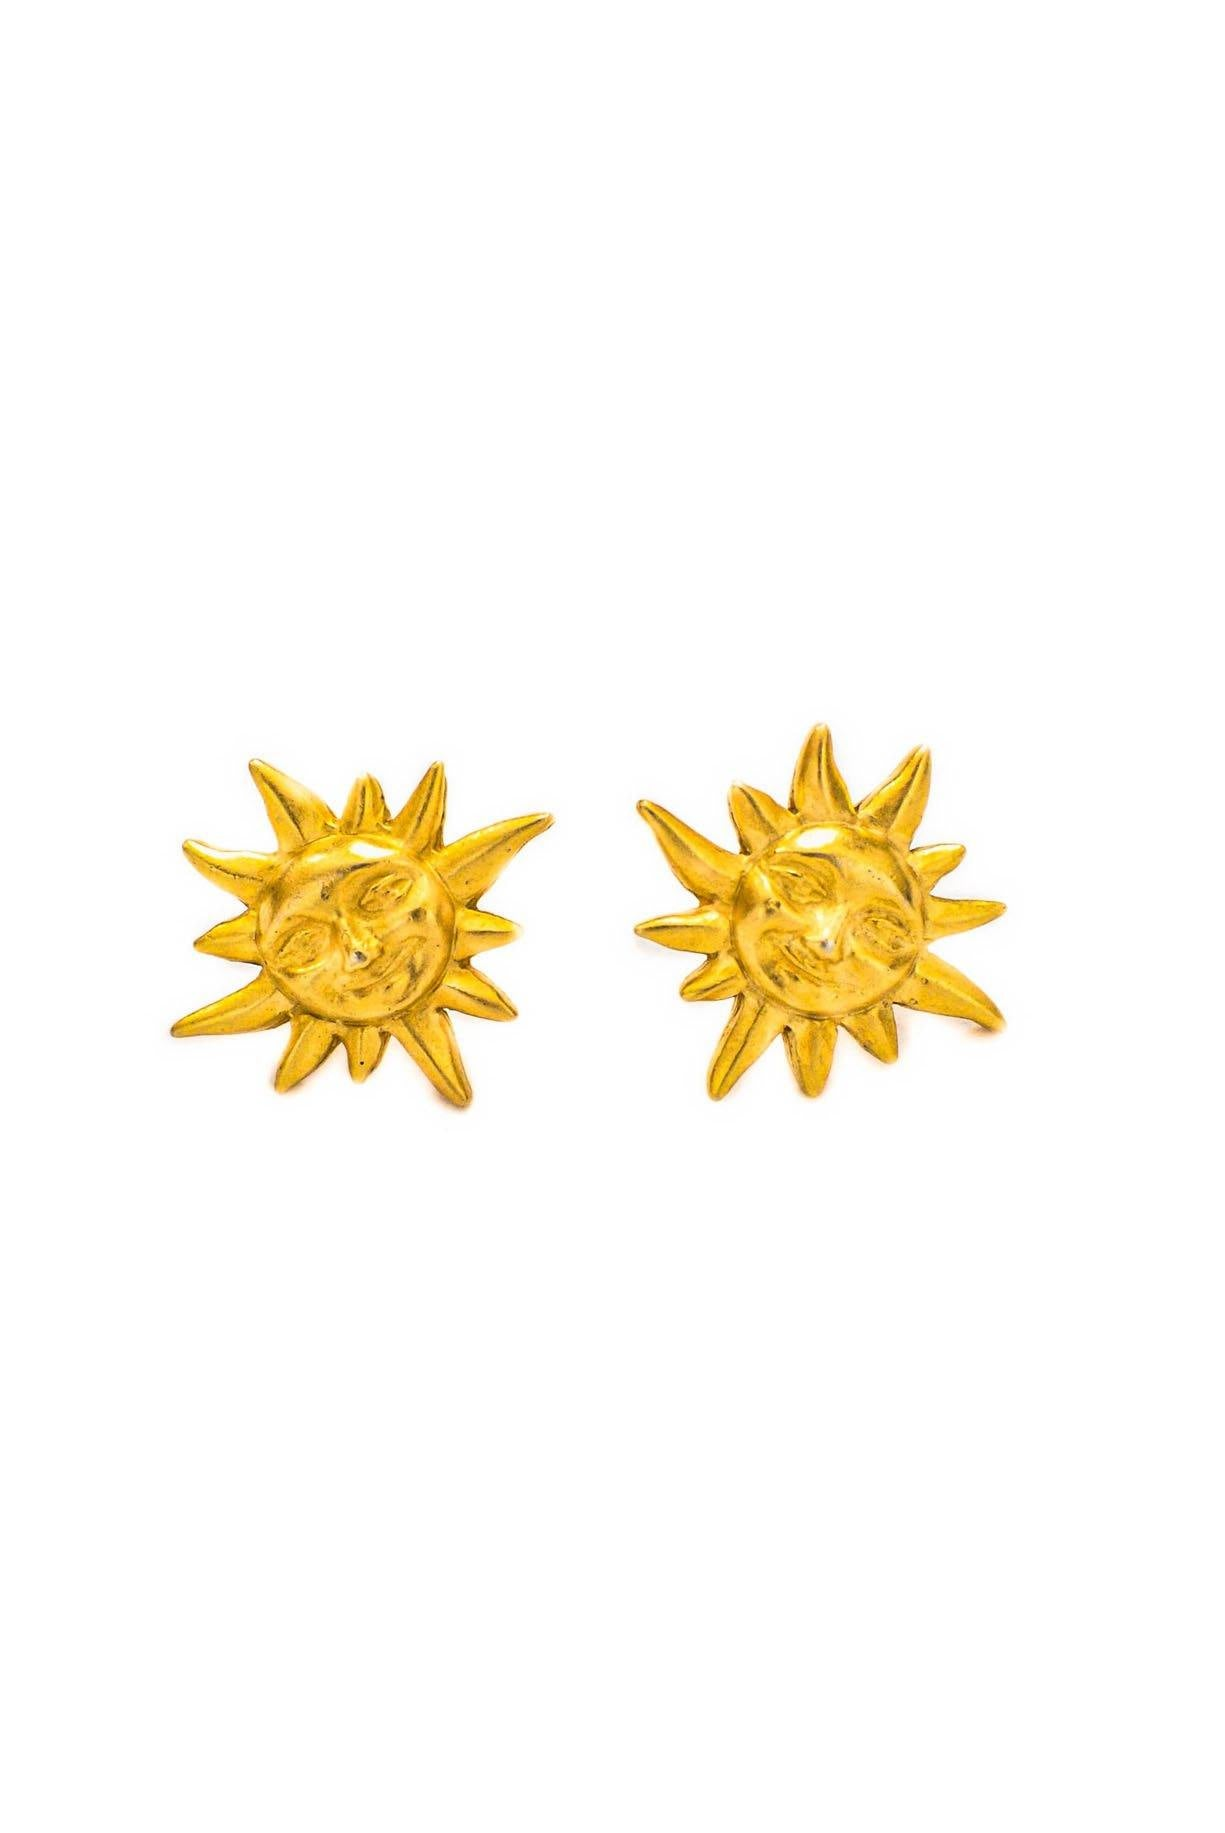 Vintage Smiling Sun Matte Pierced Studs from Sweet and Spark